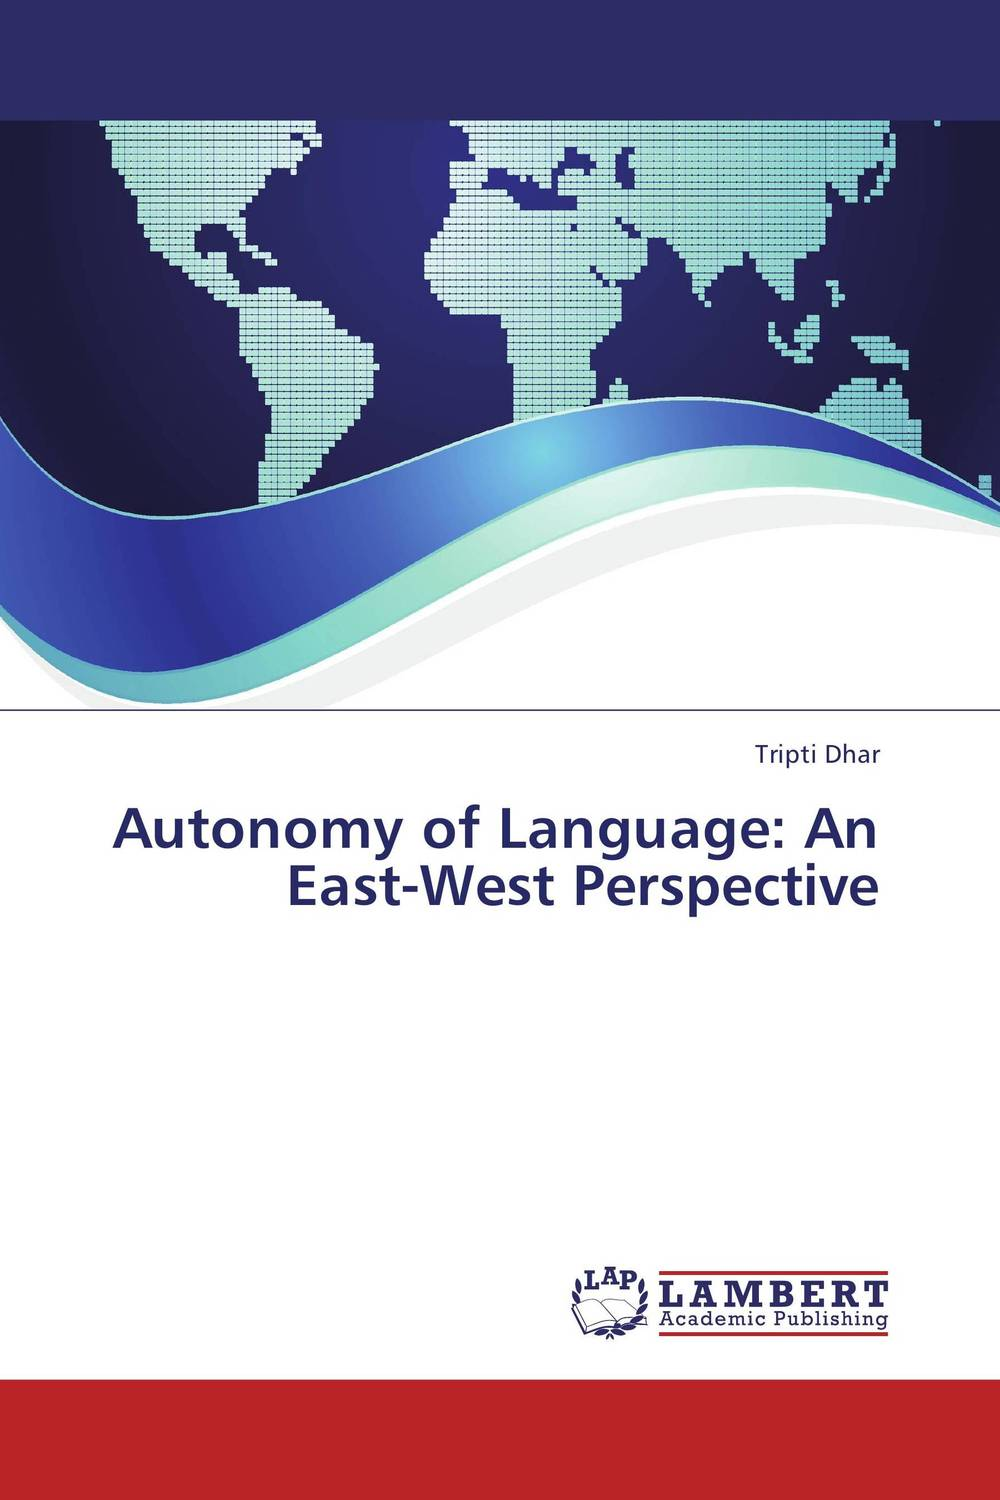 Autonomy of Language: An East-West Perspective ways of meaning – an introduction to a philosophy of language